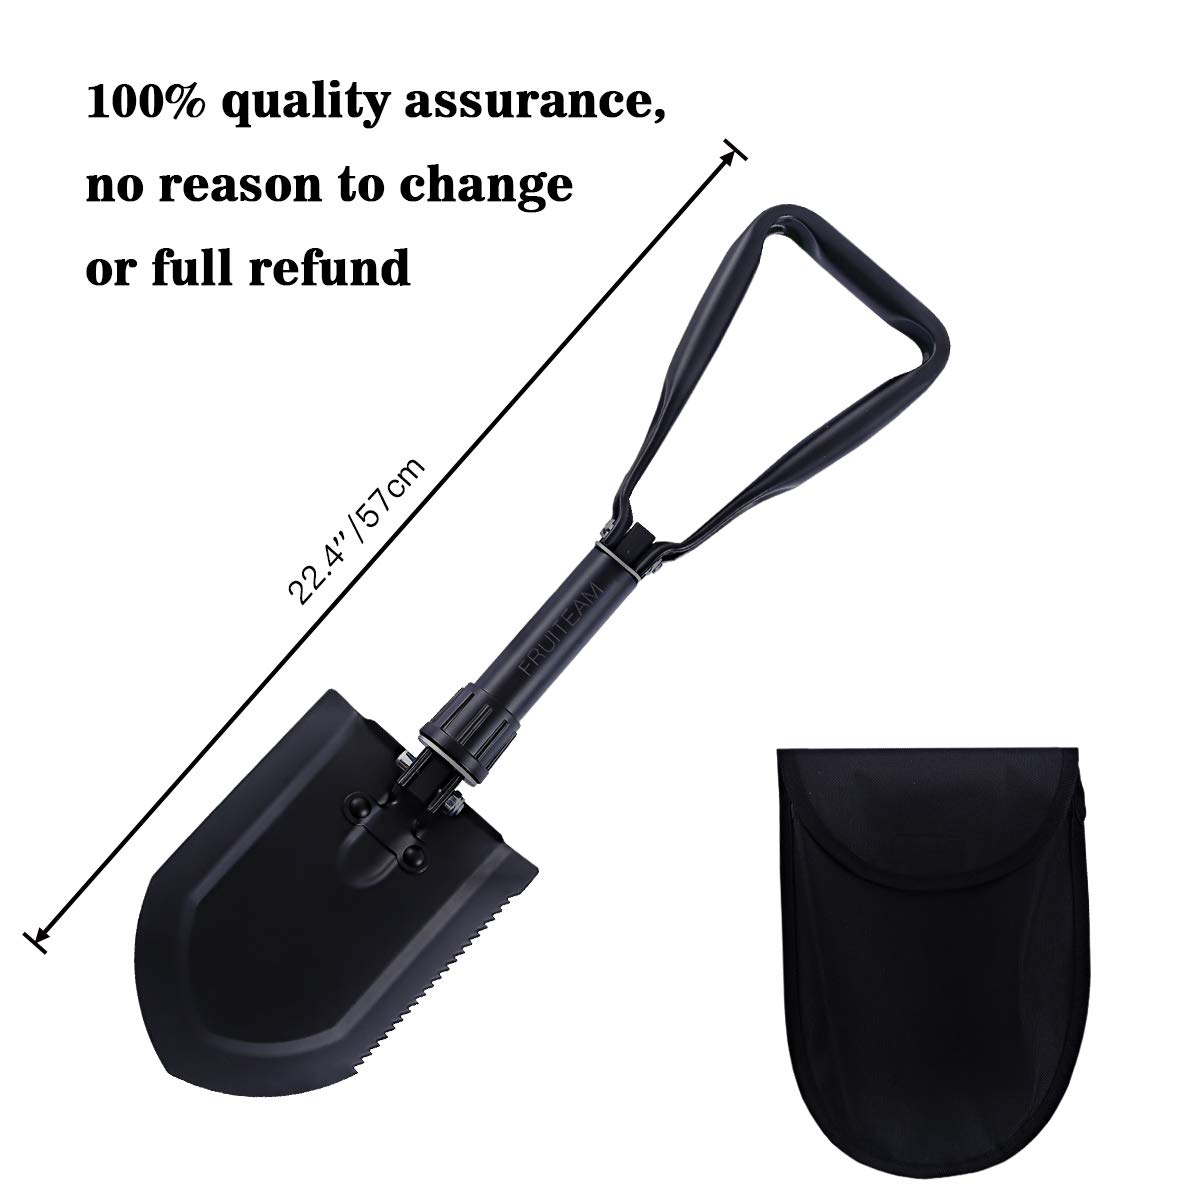 FRUITEAM D Handle Shovel 22.4'' Folding Shovel High Carbon Steel for Survival Camping Gardening Snow Removal and SUV Emergencies, Entrenching Trowel Tool Includes Carrying Pouch with Loop